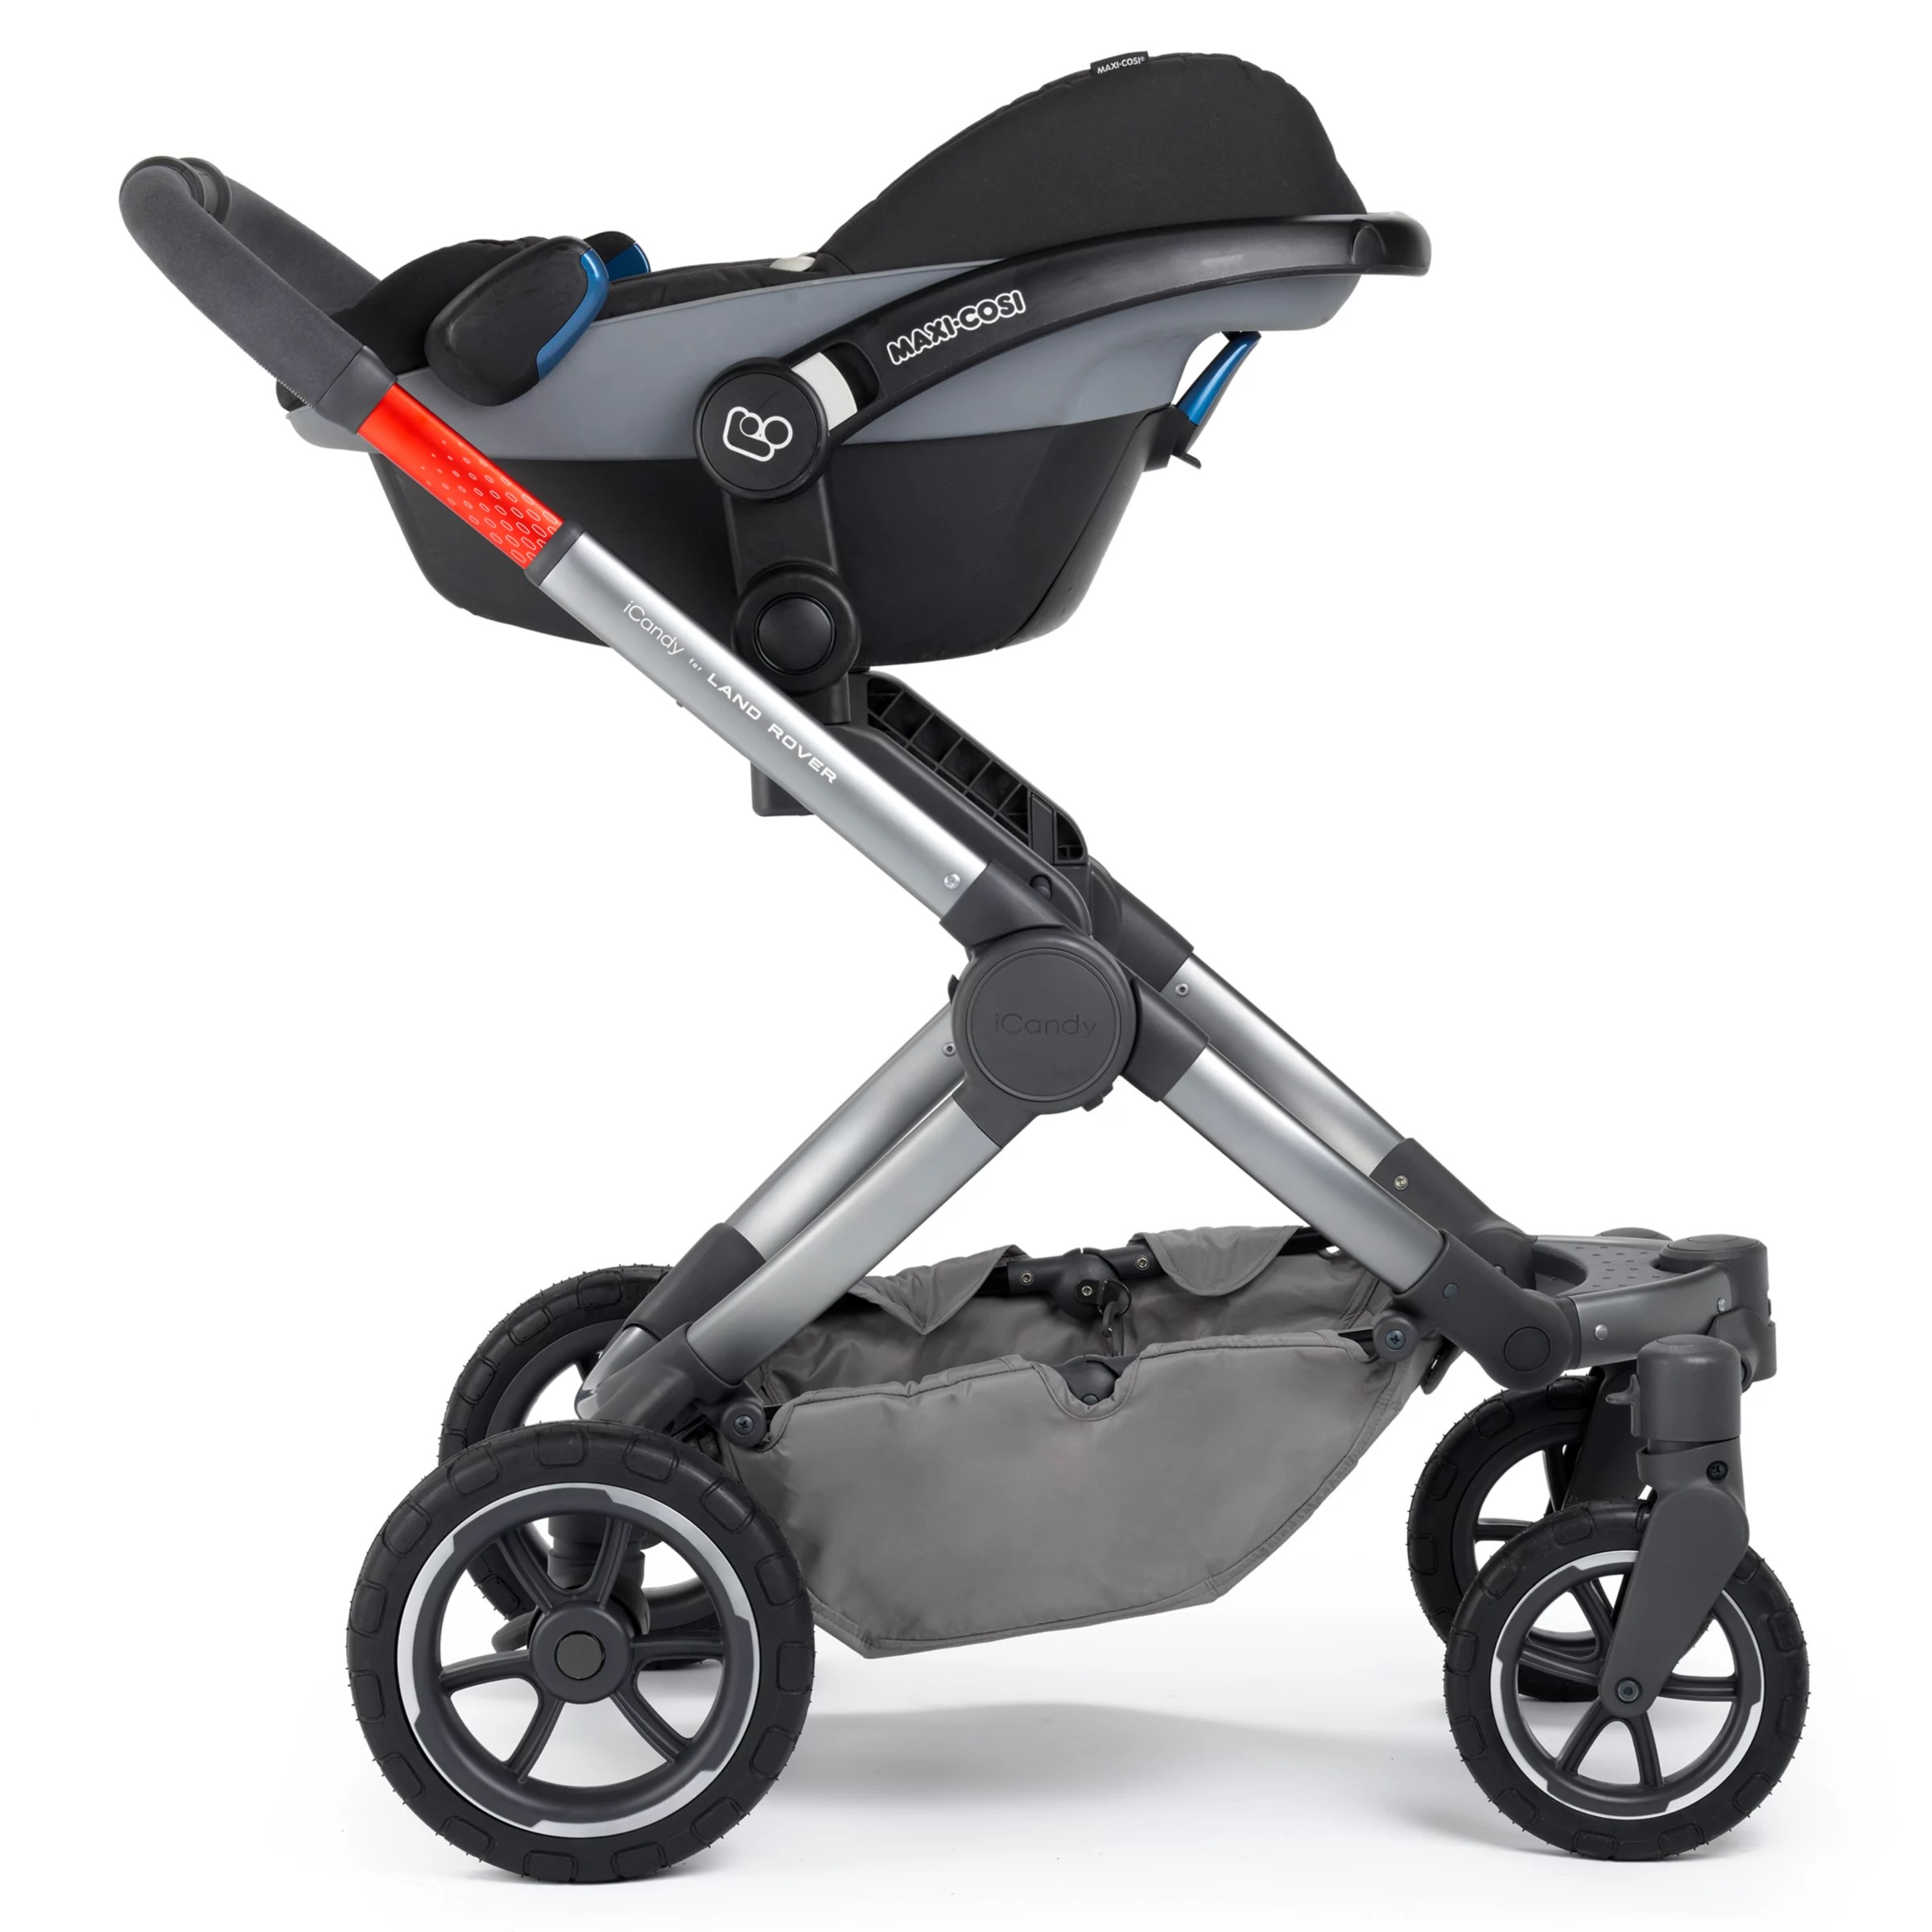 3 Wheel Baby Prams Icandy For Landrover Peach All Terrain Special Edition Pushchair And Carrycot